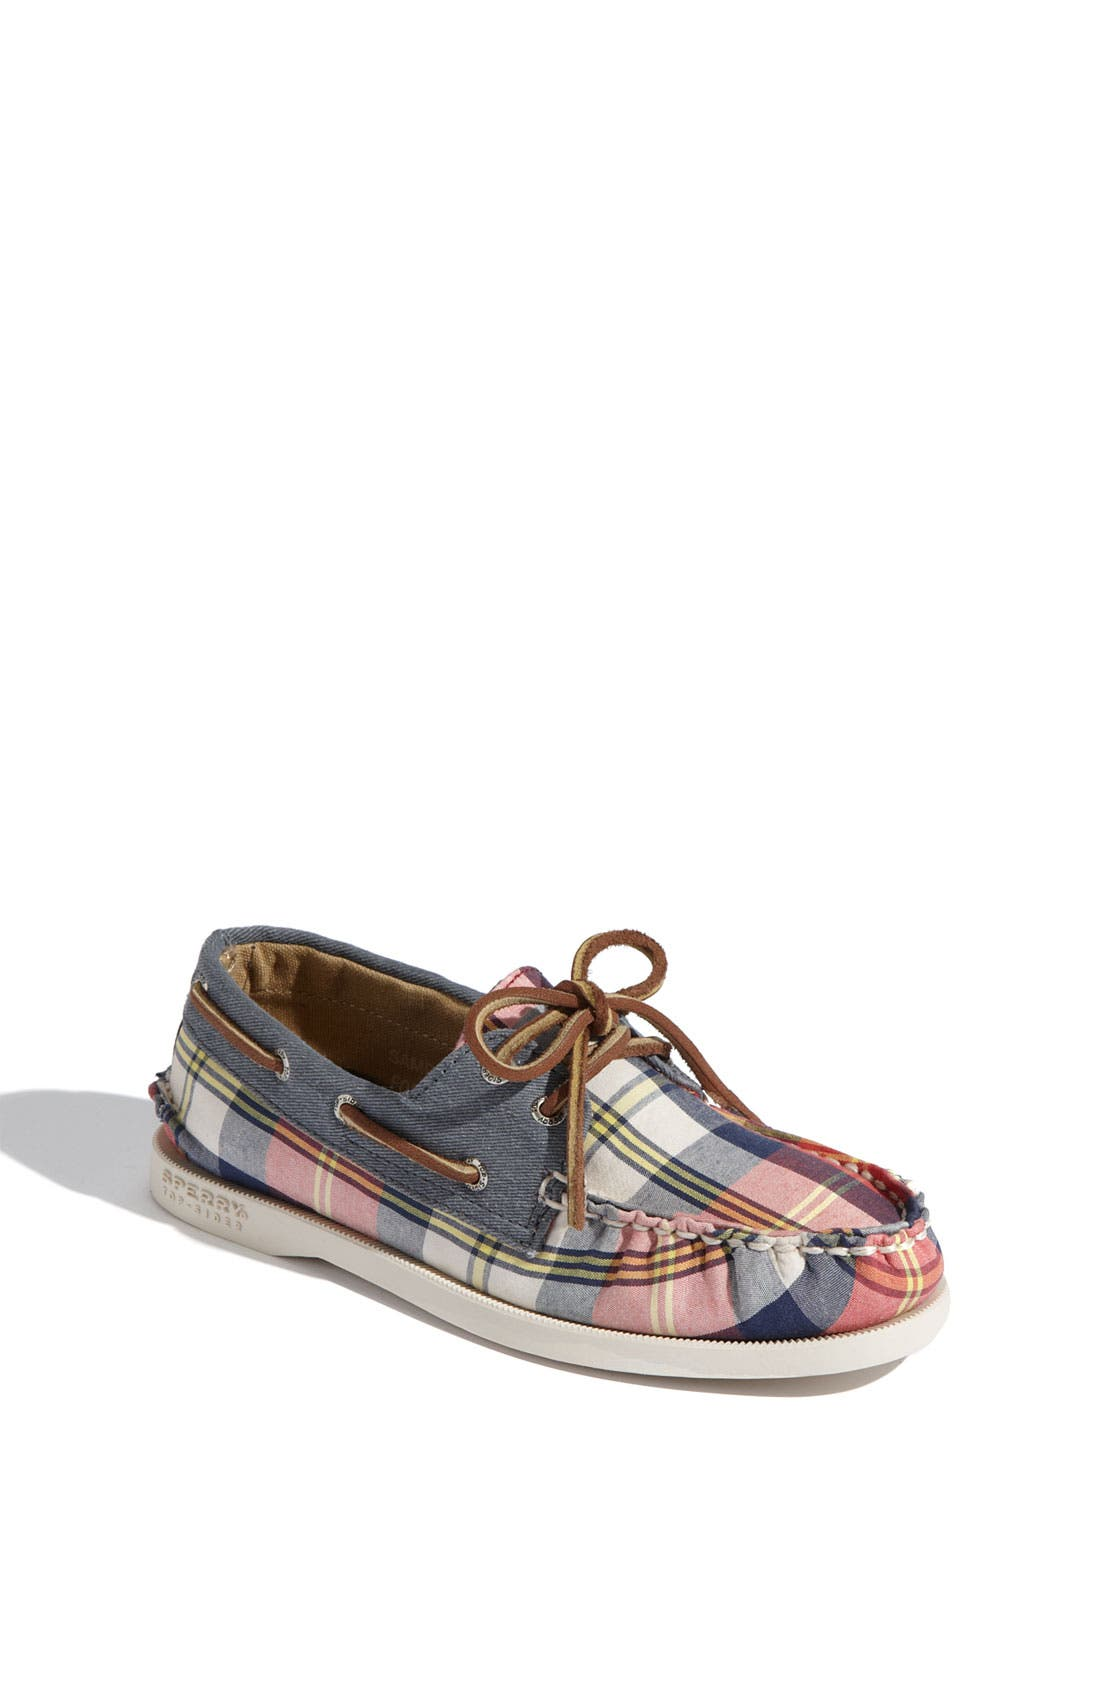 Alternate Image 1 Selected - Sperry Top-Sider® 'Authentic Original Plaid' Boat Shoe (Walker & Toddler)